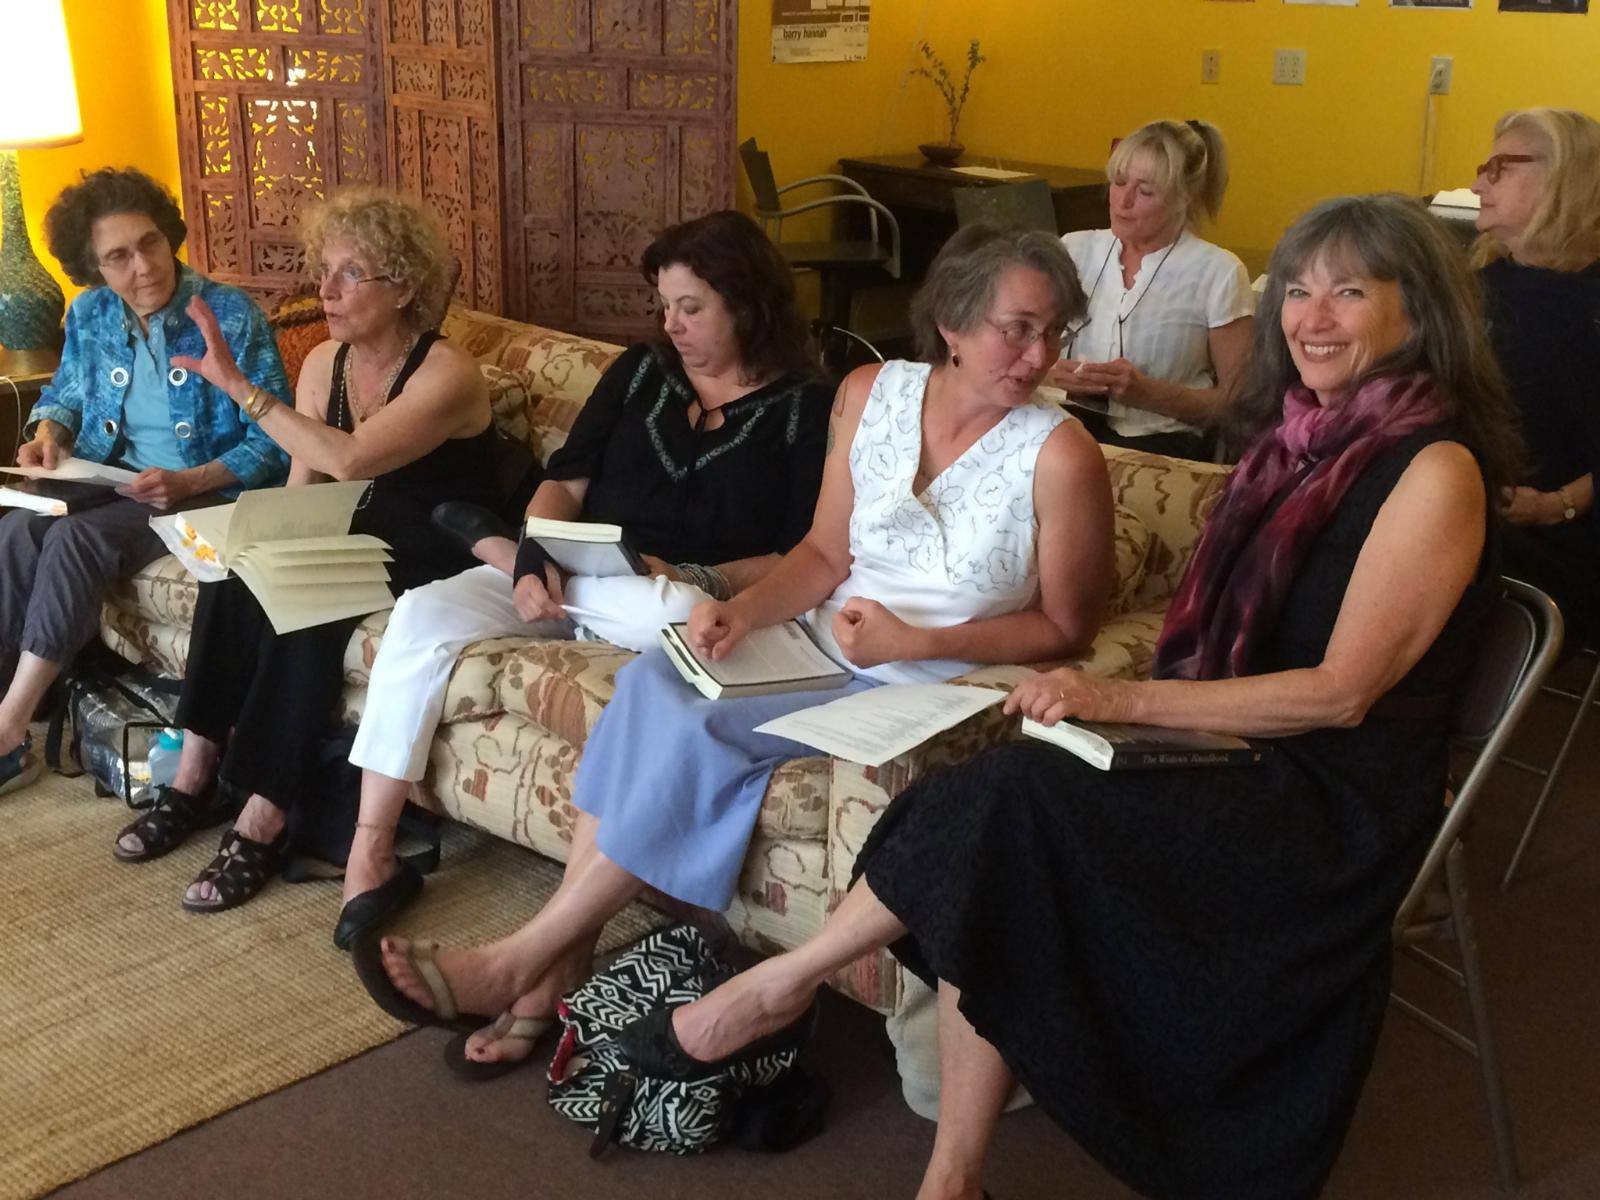 On couch: Susanne Braham, Jacqueline Lapidus, Tammi Truax, Carolyn Stephens, Patricia Savage; back row, Christine Silverstein and Donna Hilbert